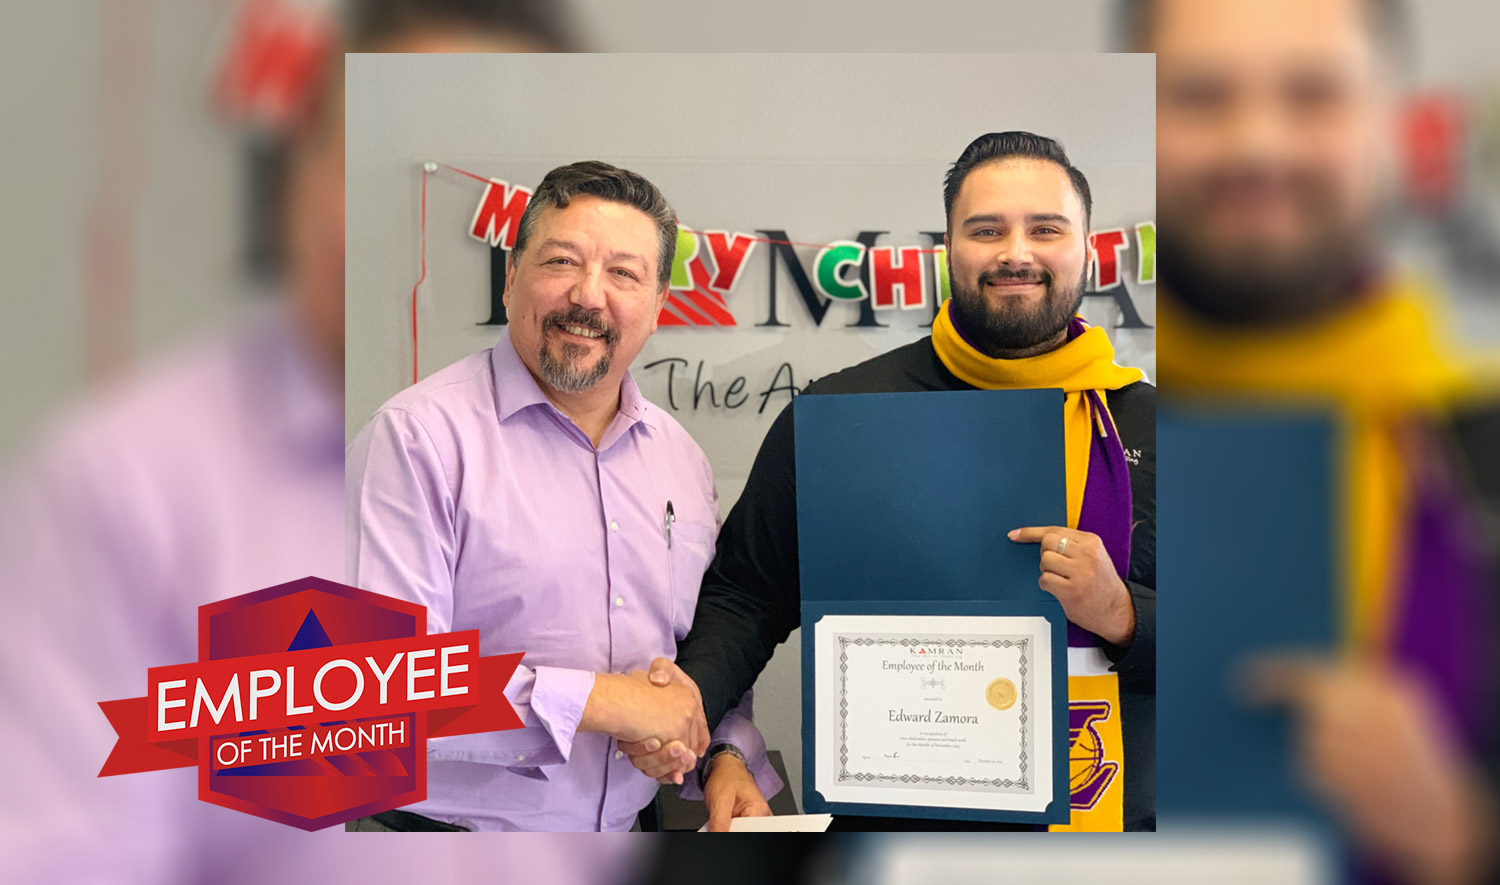 Kamran Staffing, Inc. - Employee of the Month - November 2019 - Edward Zamora shaking hands with Robert Sosa